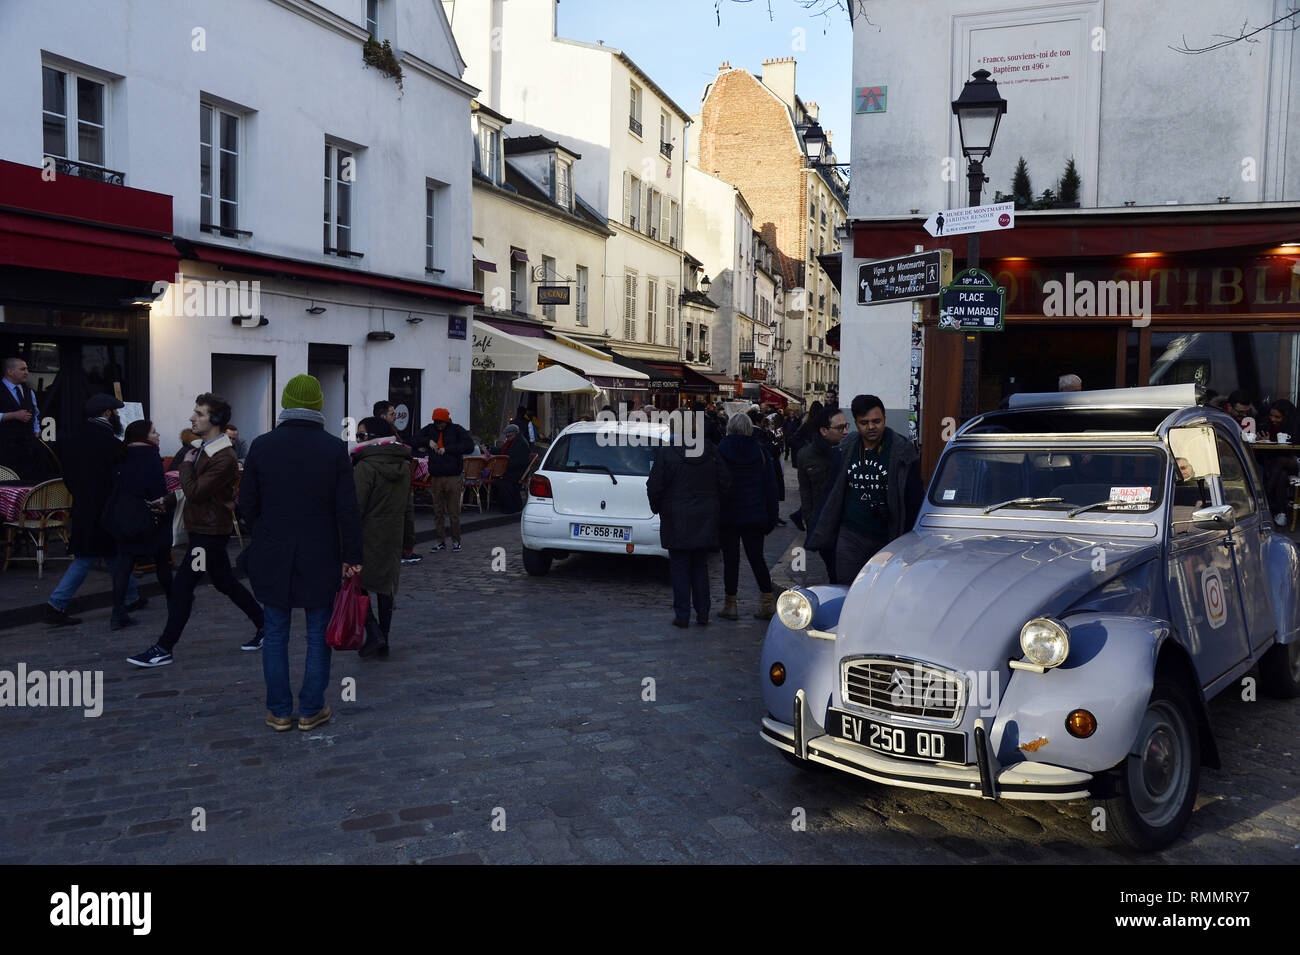 citroen 2cv france stock photos  u0026 citroen 2cv france stock images